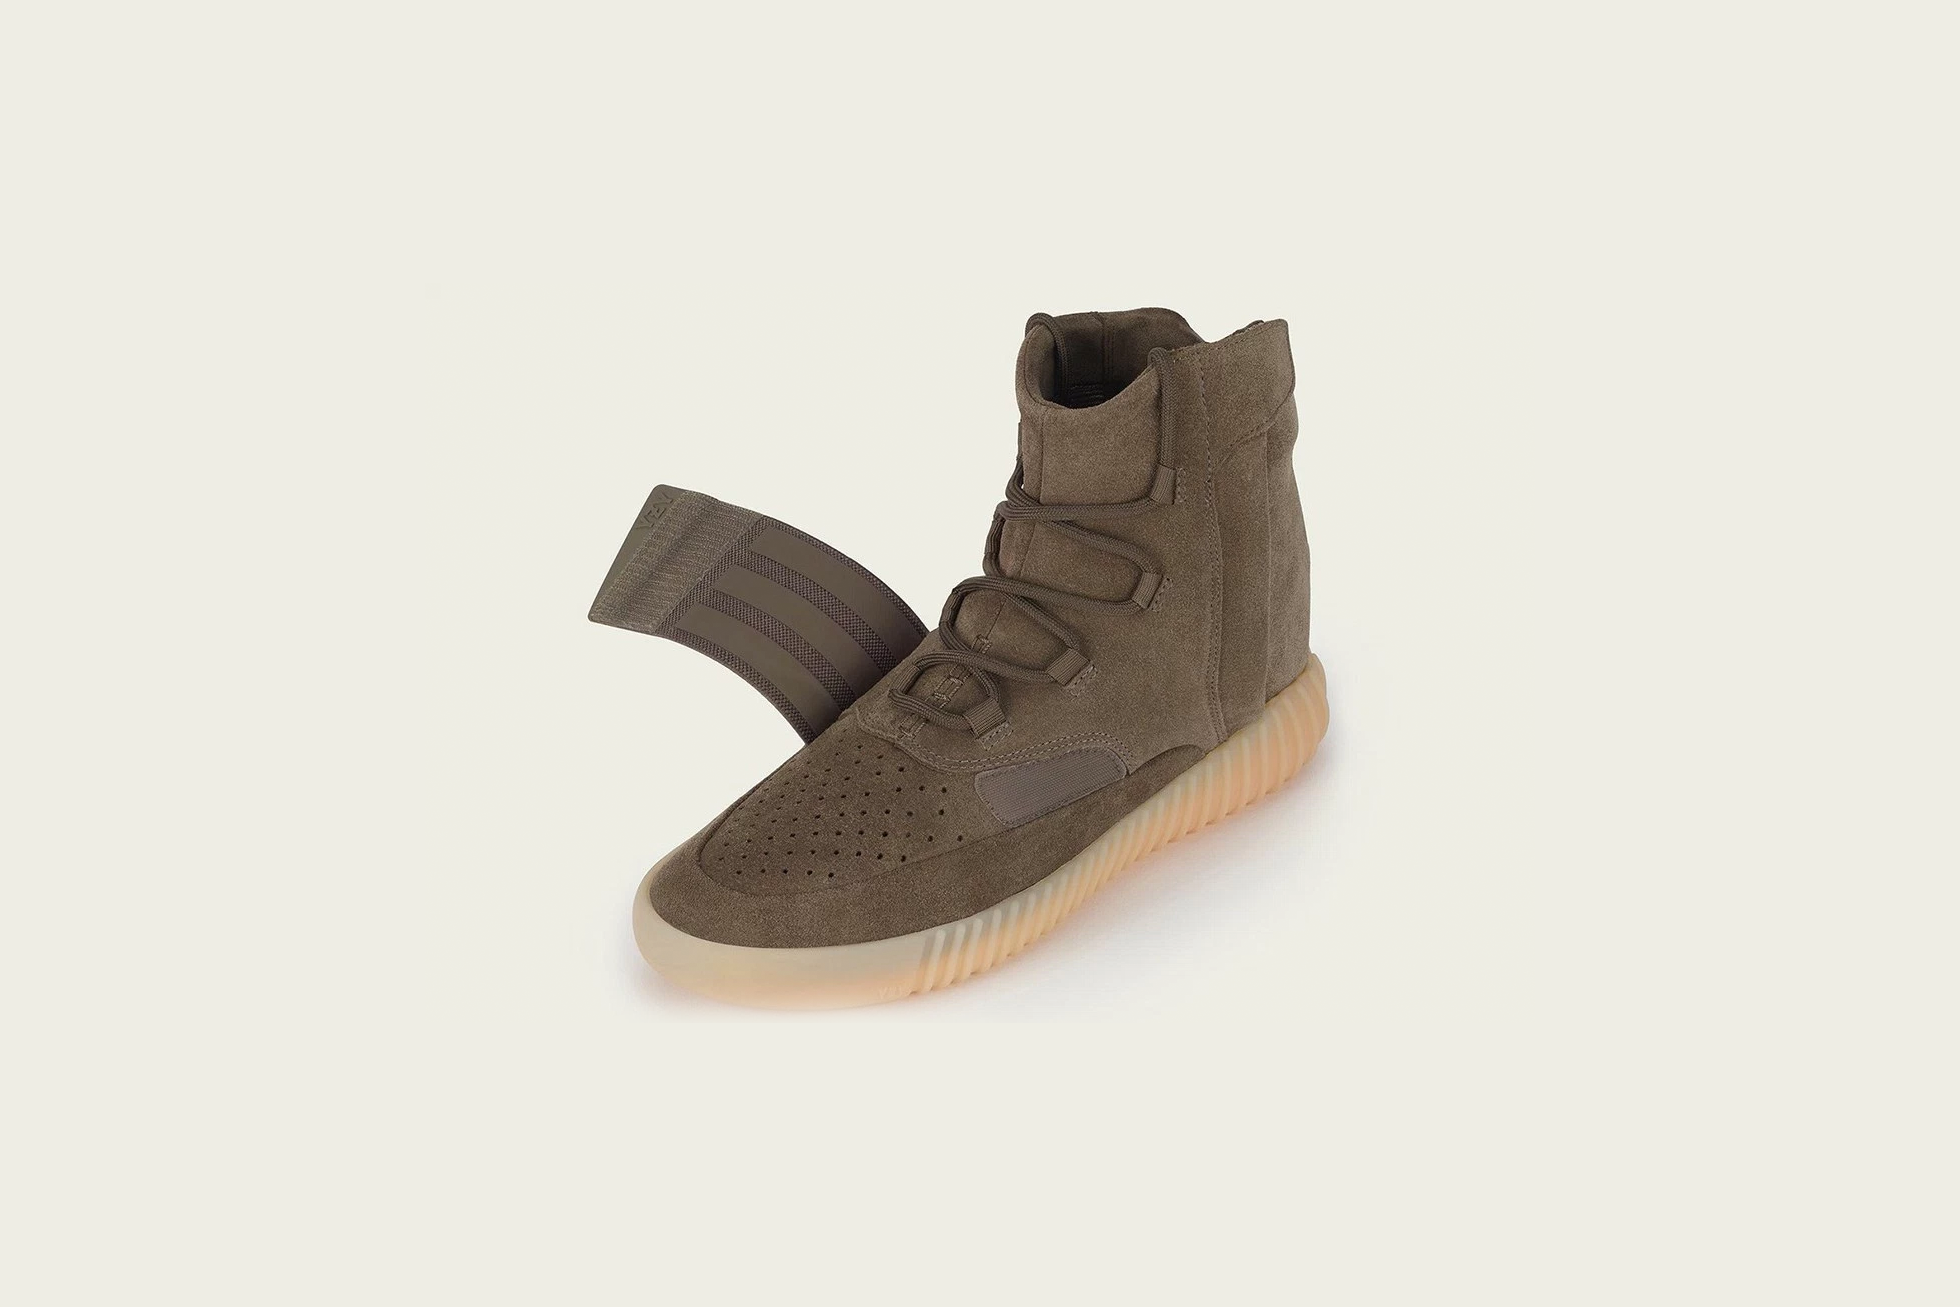 adidas Yeezy Boost 750 Brown 3